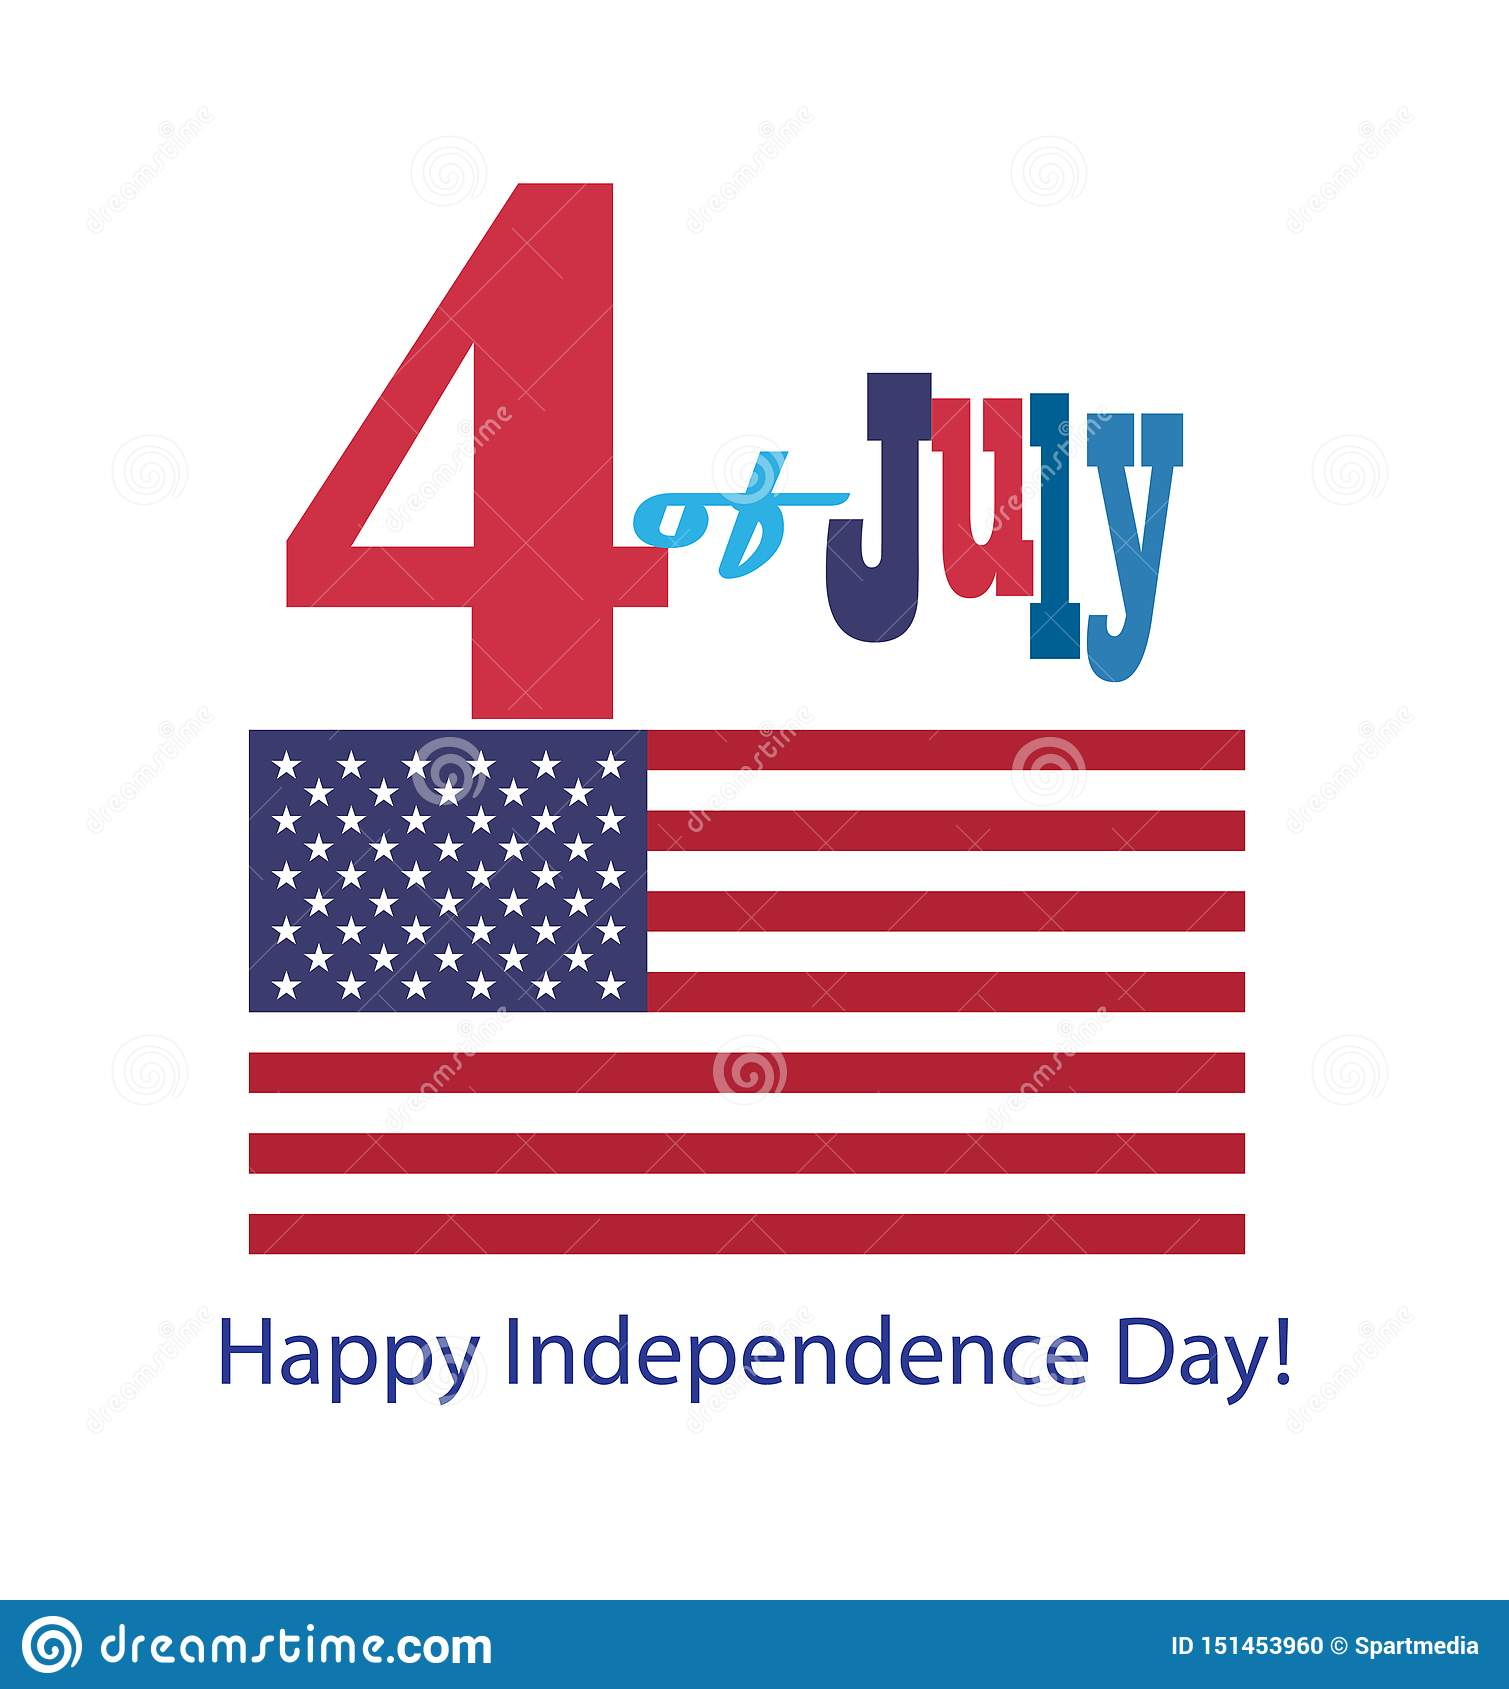 4th of July Happy Independence Day 2019 Greeting card poster Patriotic American flag, stars symbols icons logo design banner sign